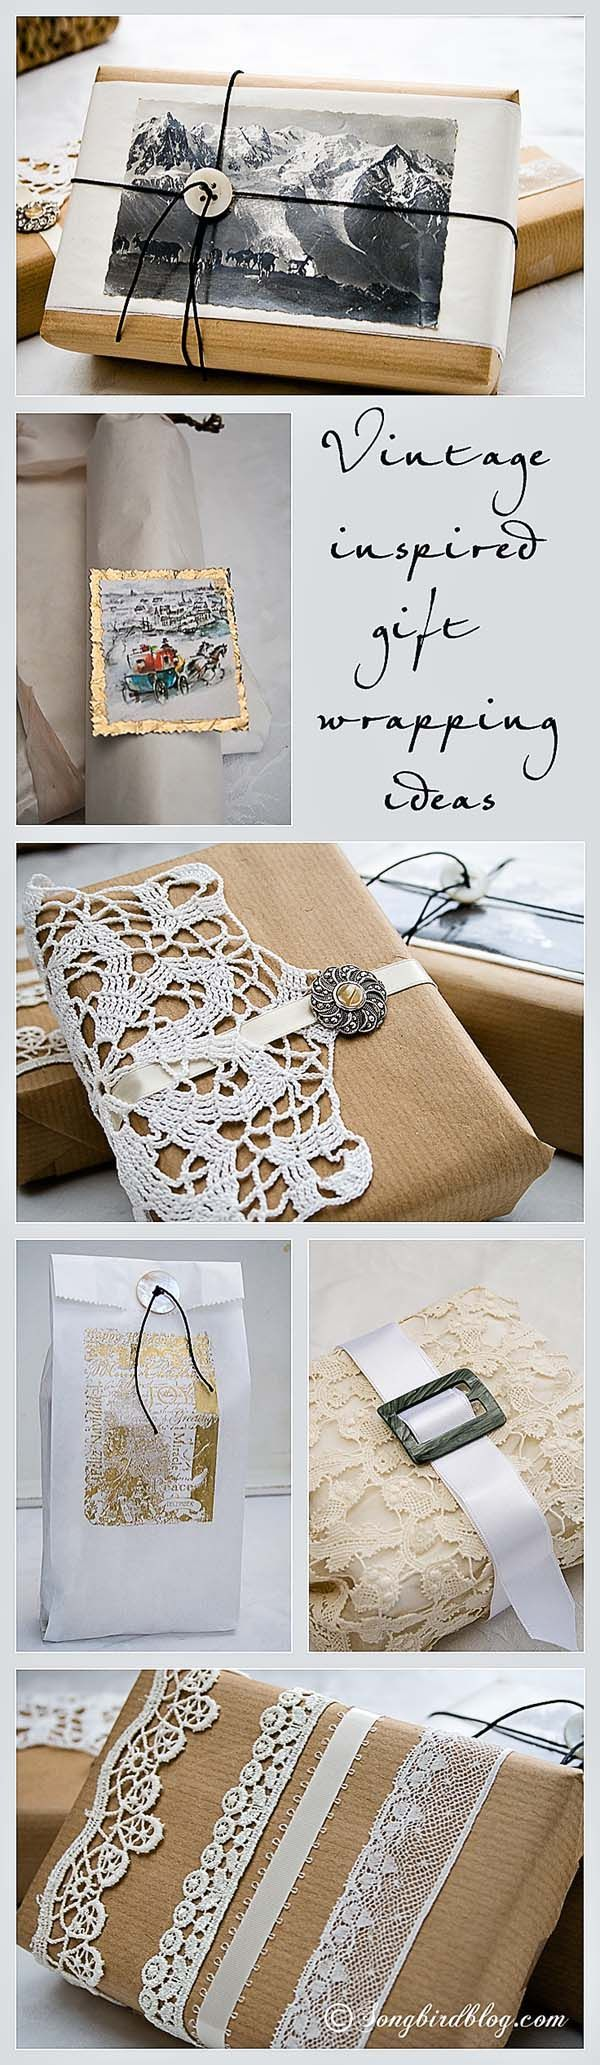 Love this cute idea for vintage gift wrapping!